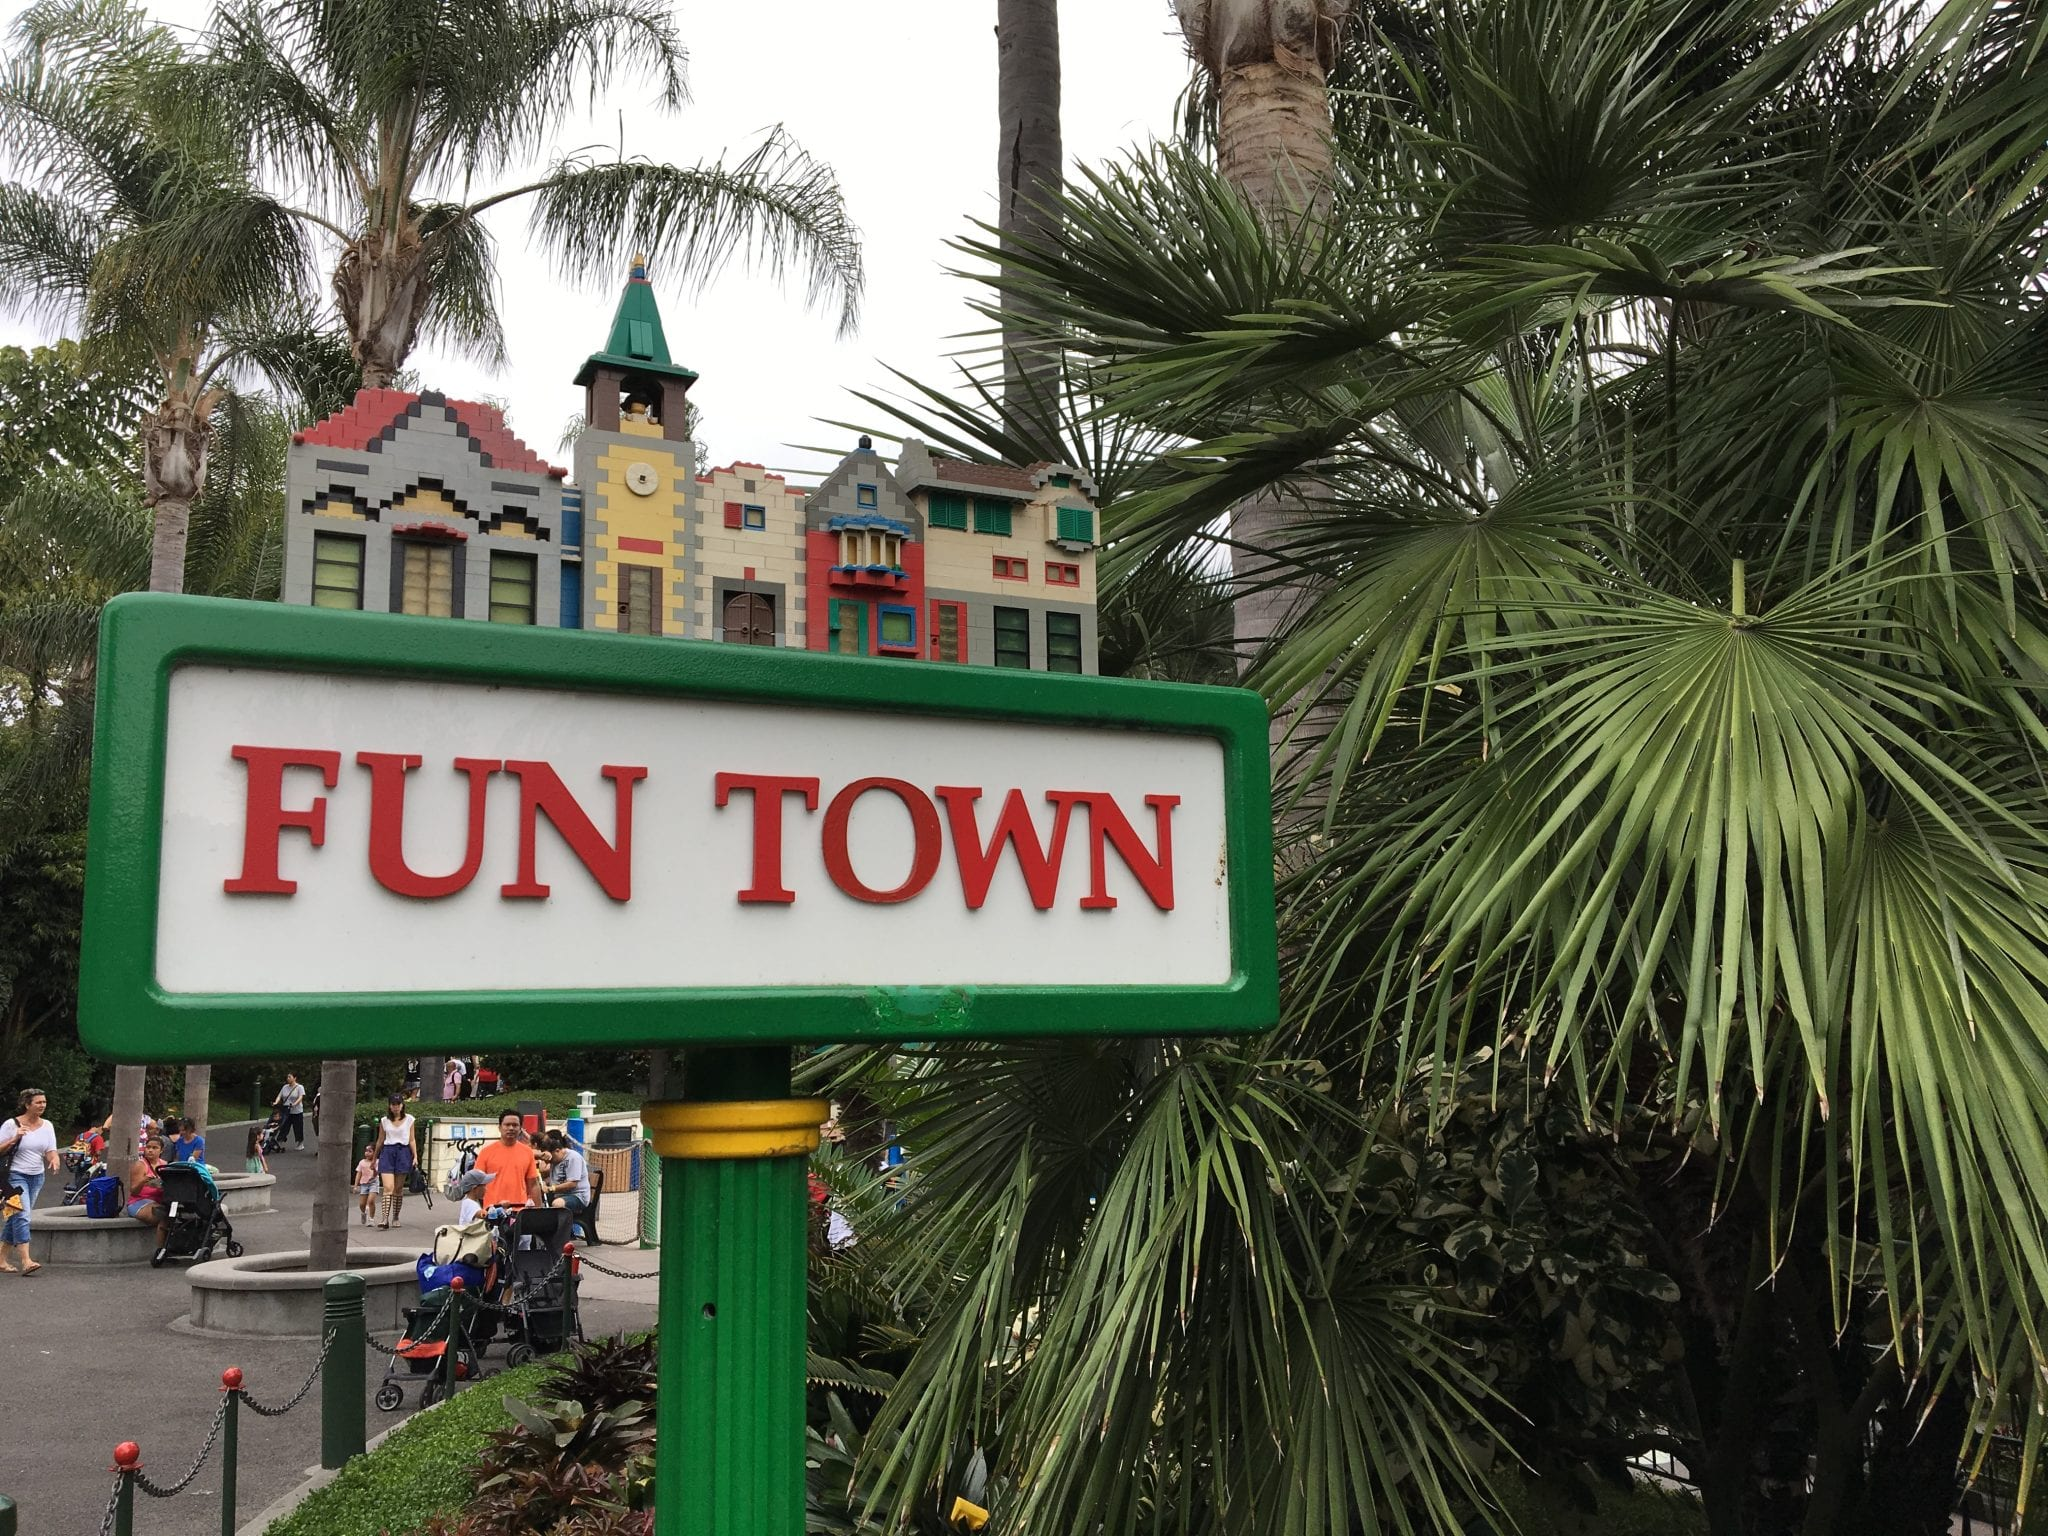 Fun town signage in front of building